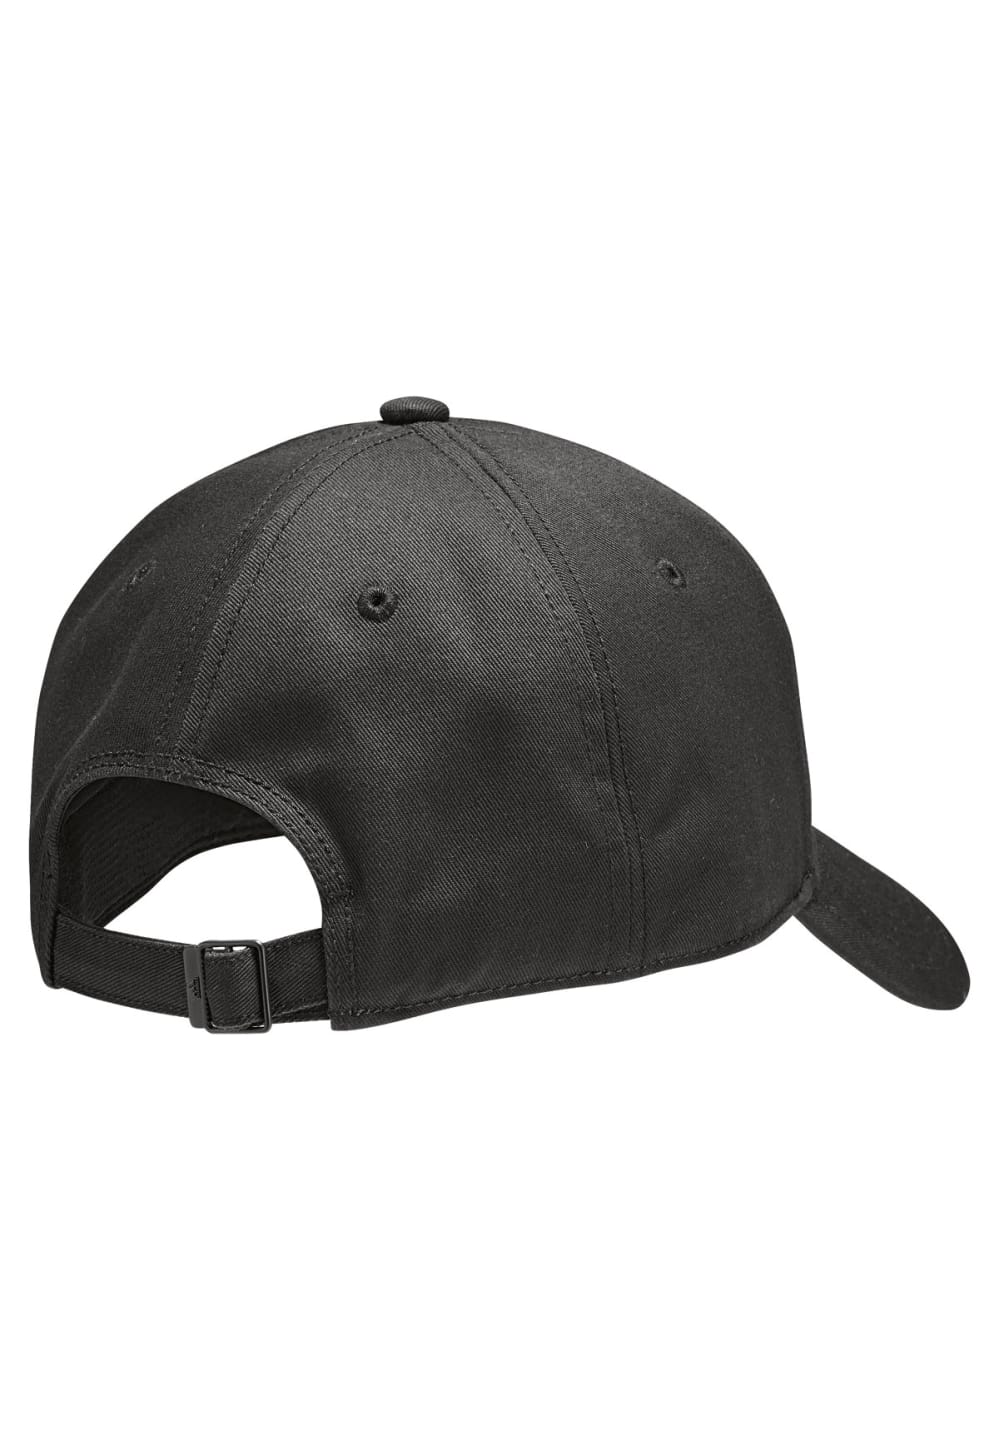 9ecea5da ... adidas 6 Panel Classic Cap Cotton - Headdress - Black. Back to  Overview. 1; 2. Previous